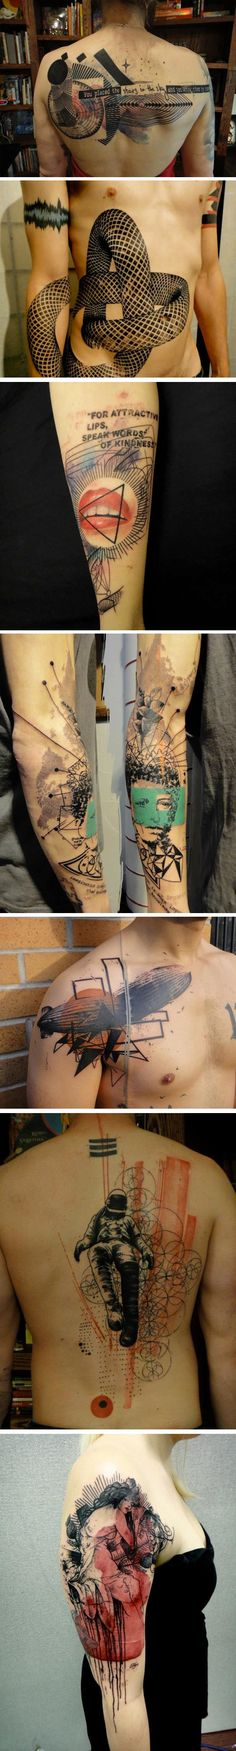 Impressionist tattoos   Artist : Xoïl His studio, Needles Side, is located in Thonon les Bains, France